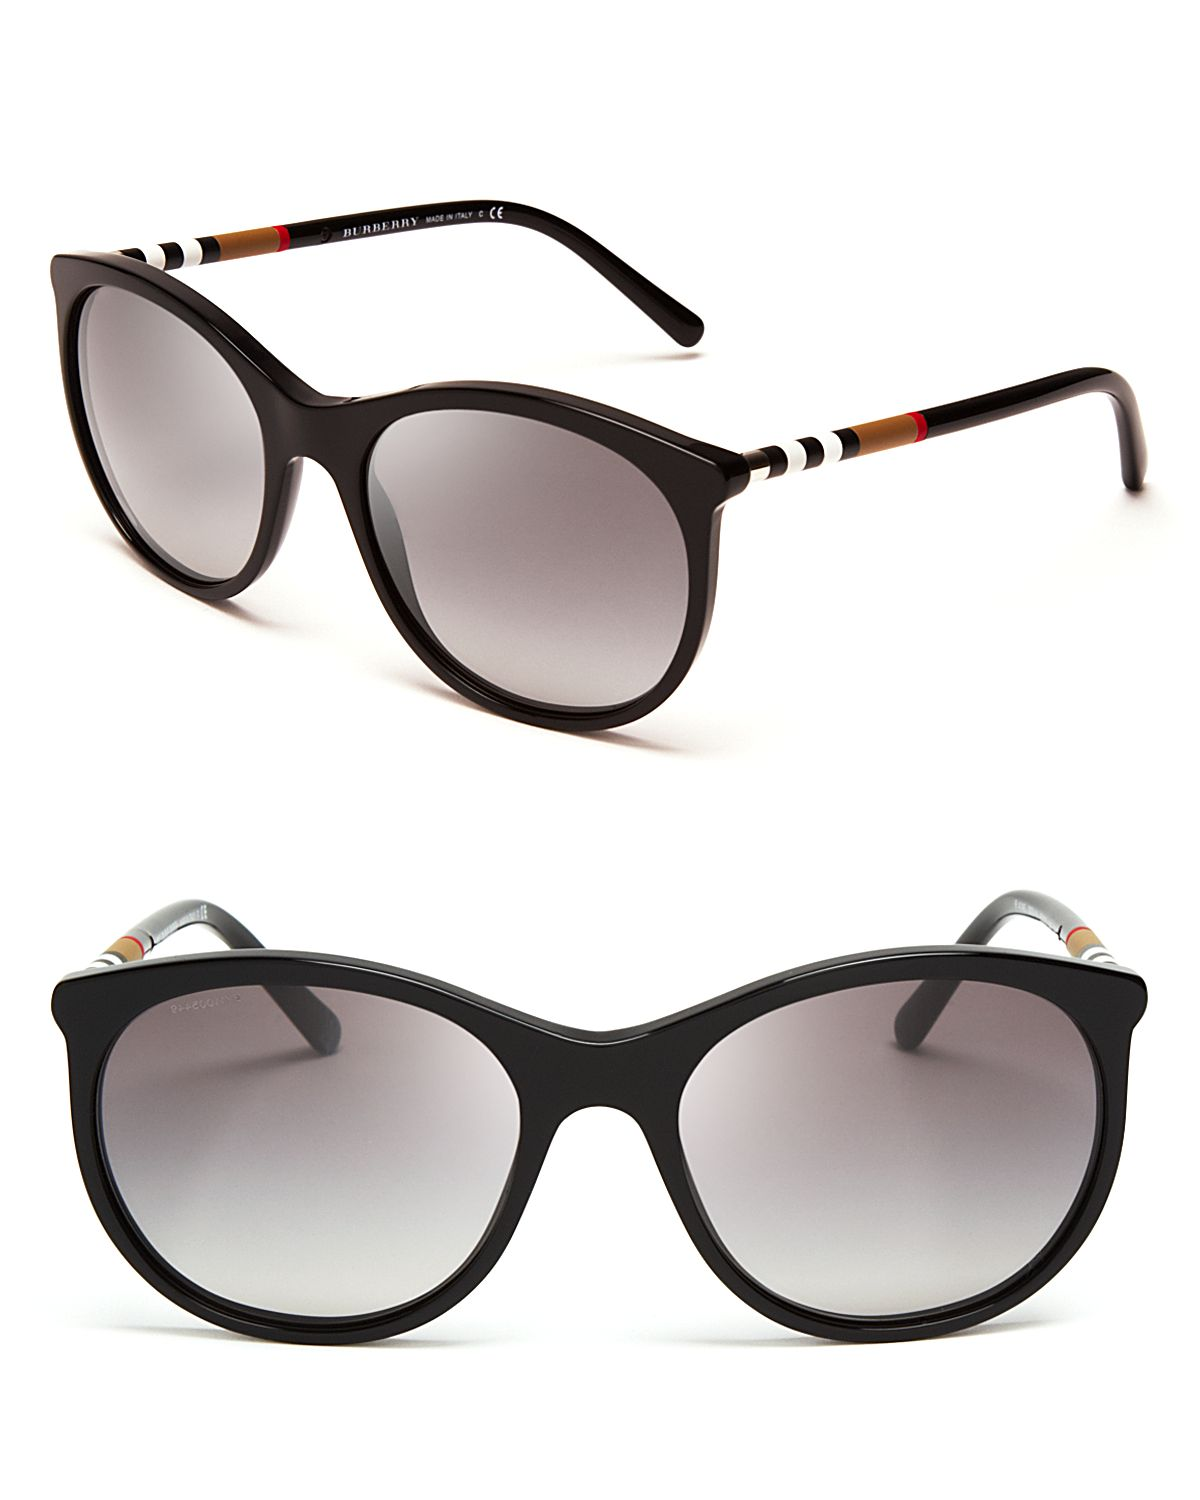 59c2d1a7759 Lyst - Burberry Classic Check Rounded Wayfarer Sunglasses in Black